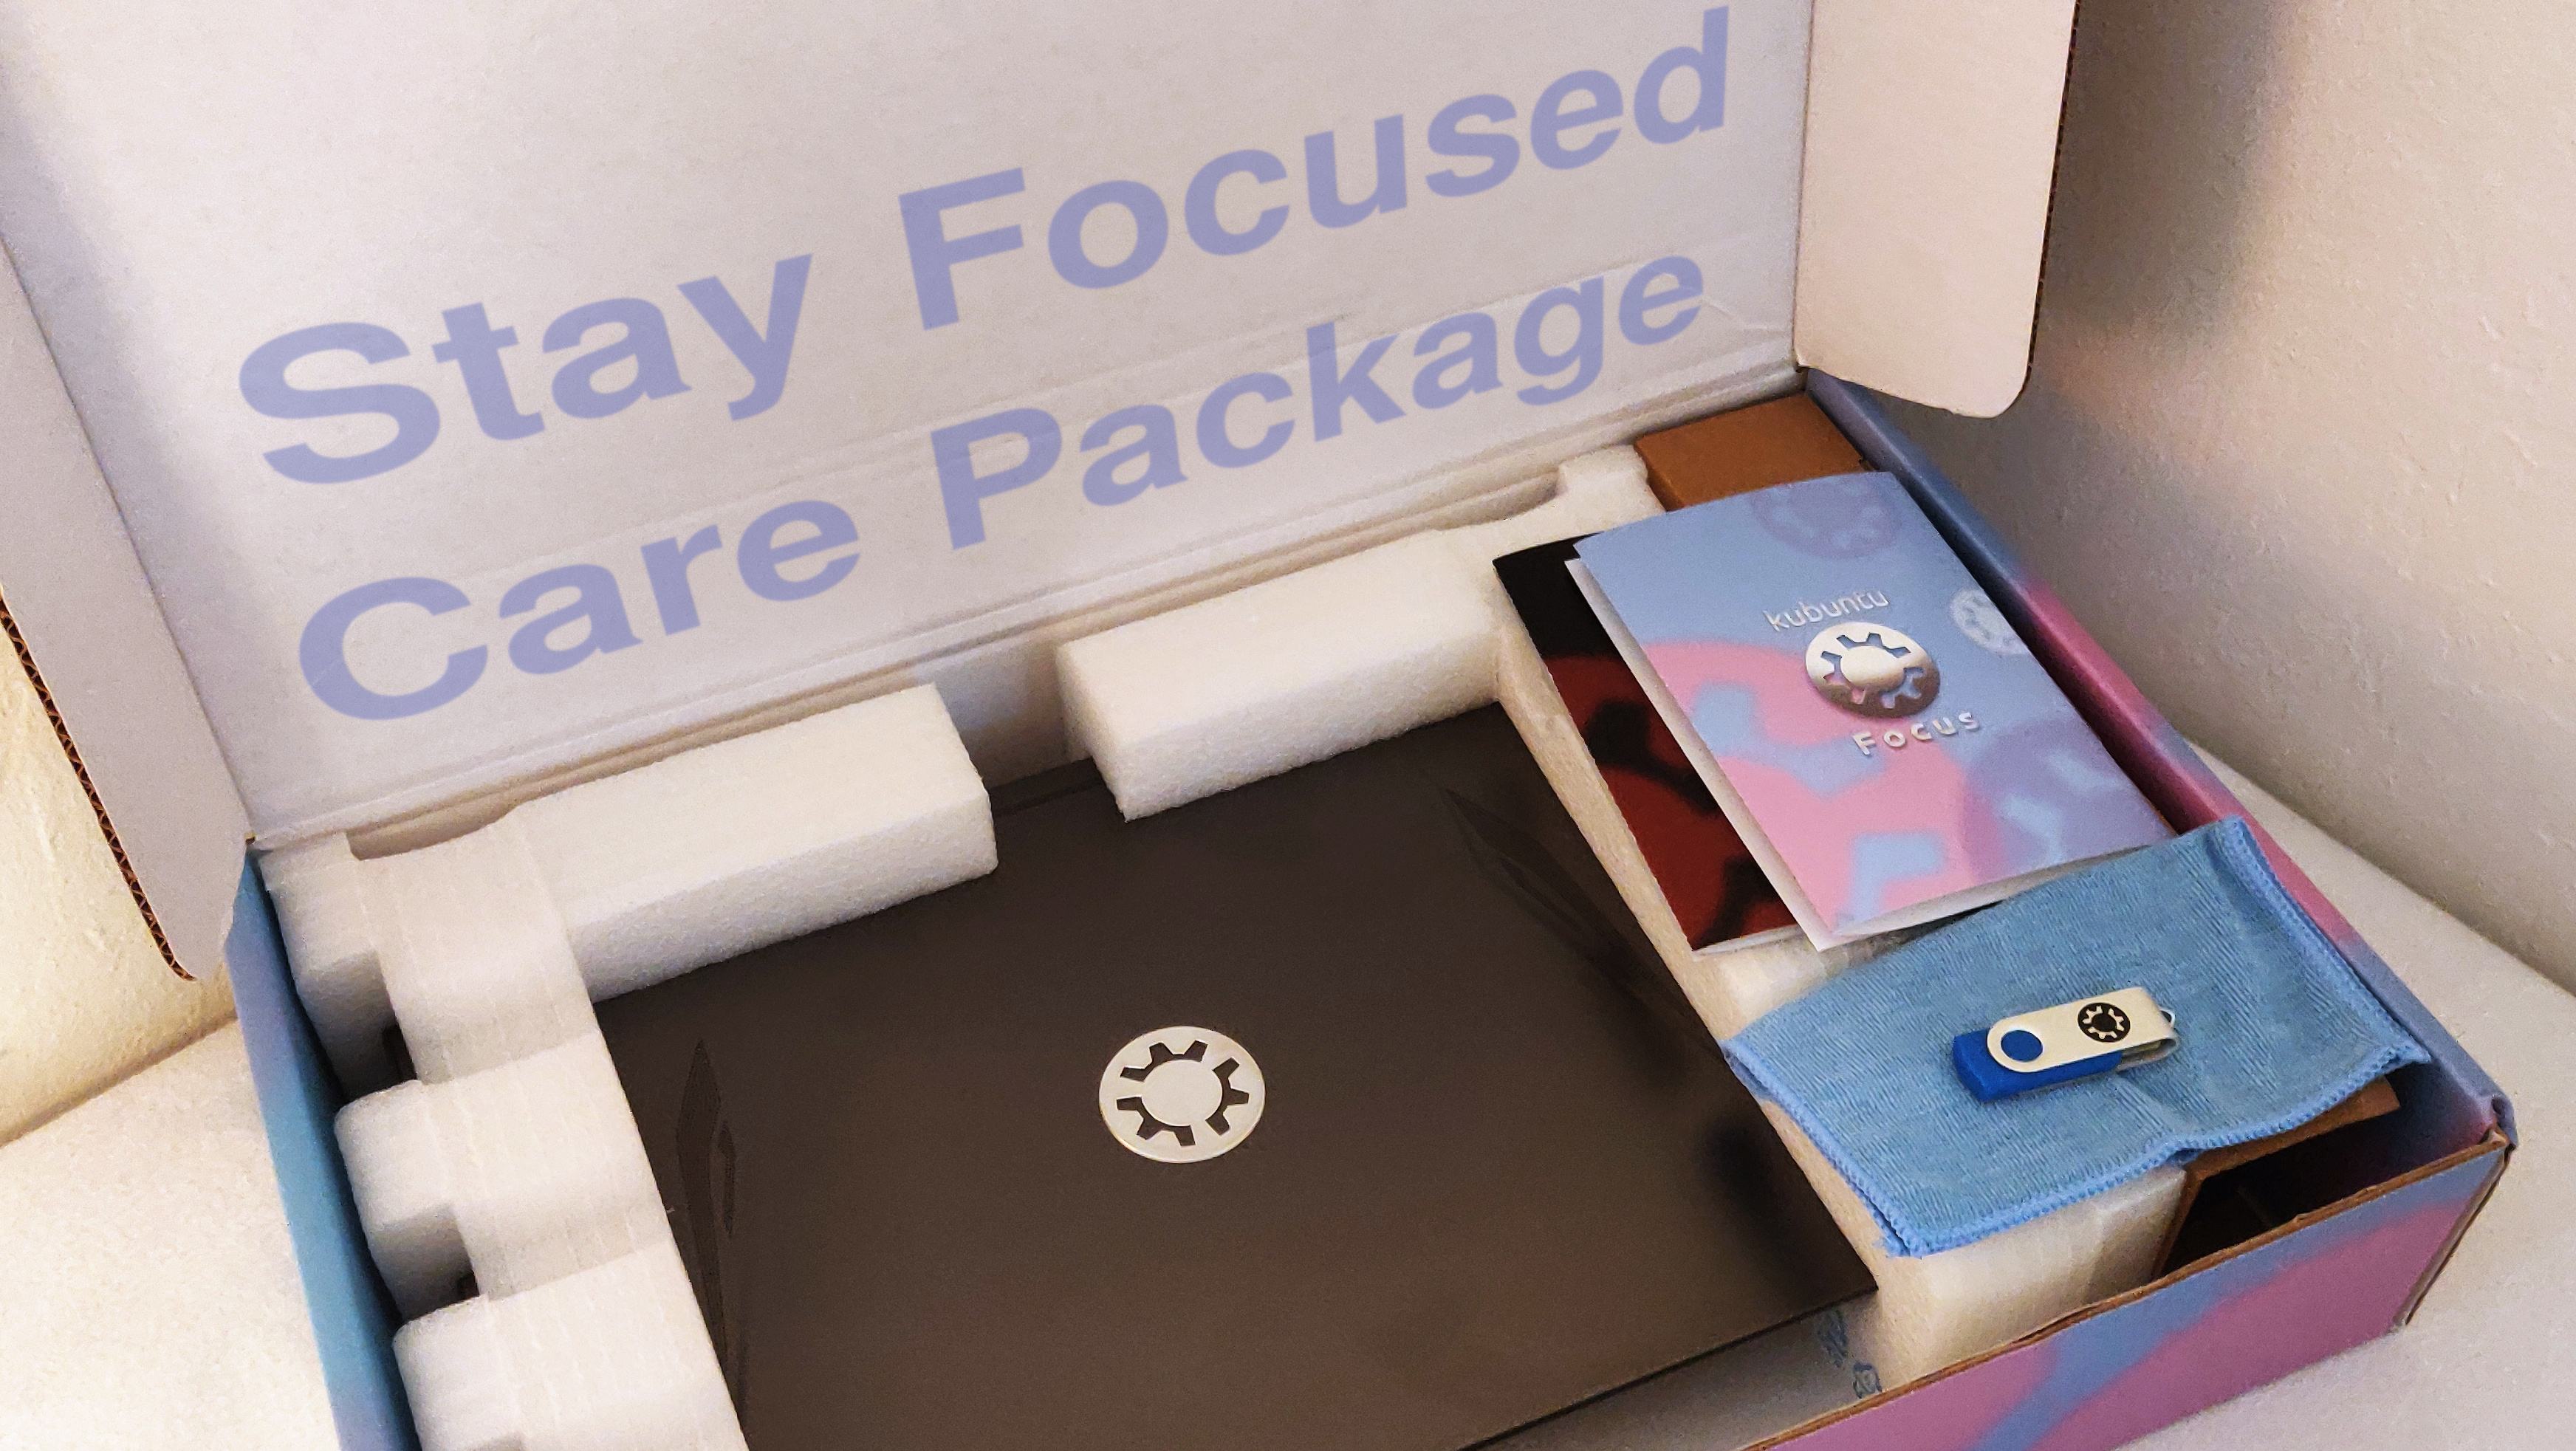 StayFocused Care Package